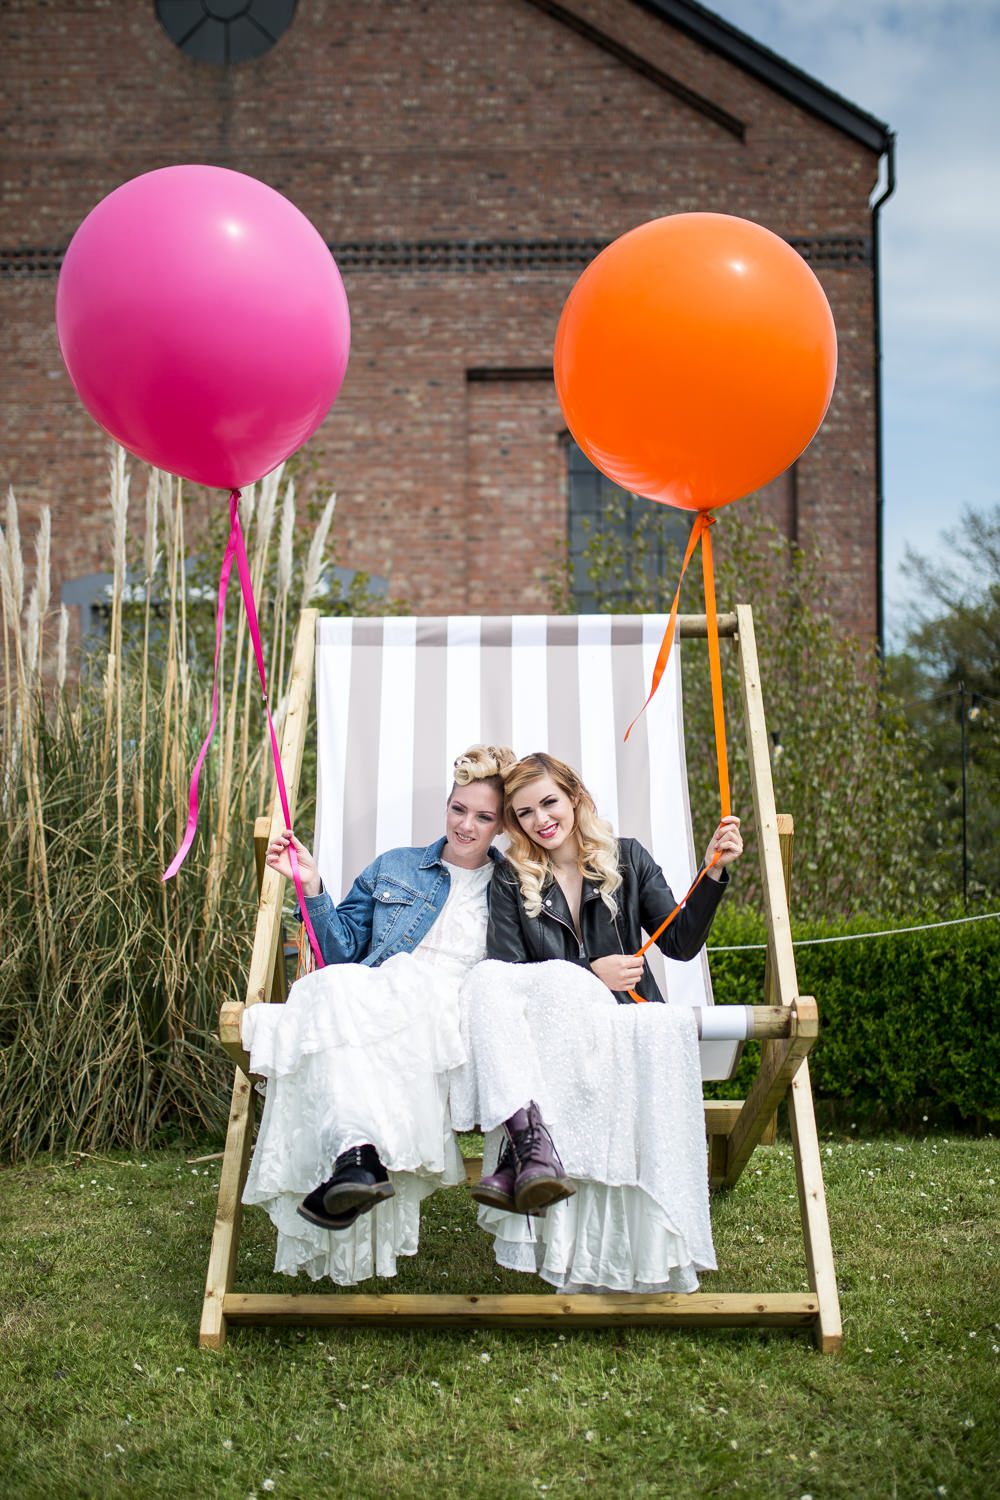 Giant Deck Chair Seating Balloons Colourful Balloons Wedding Ideas Florence Berry Photography